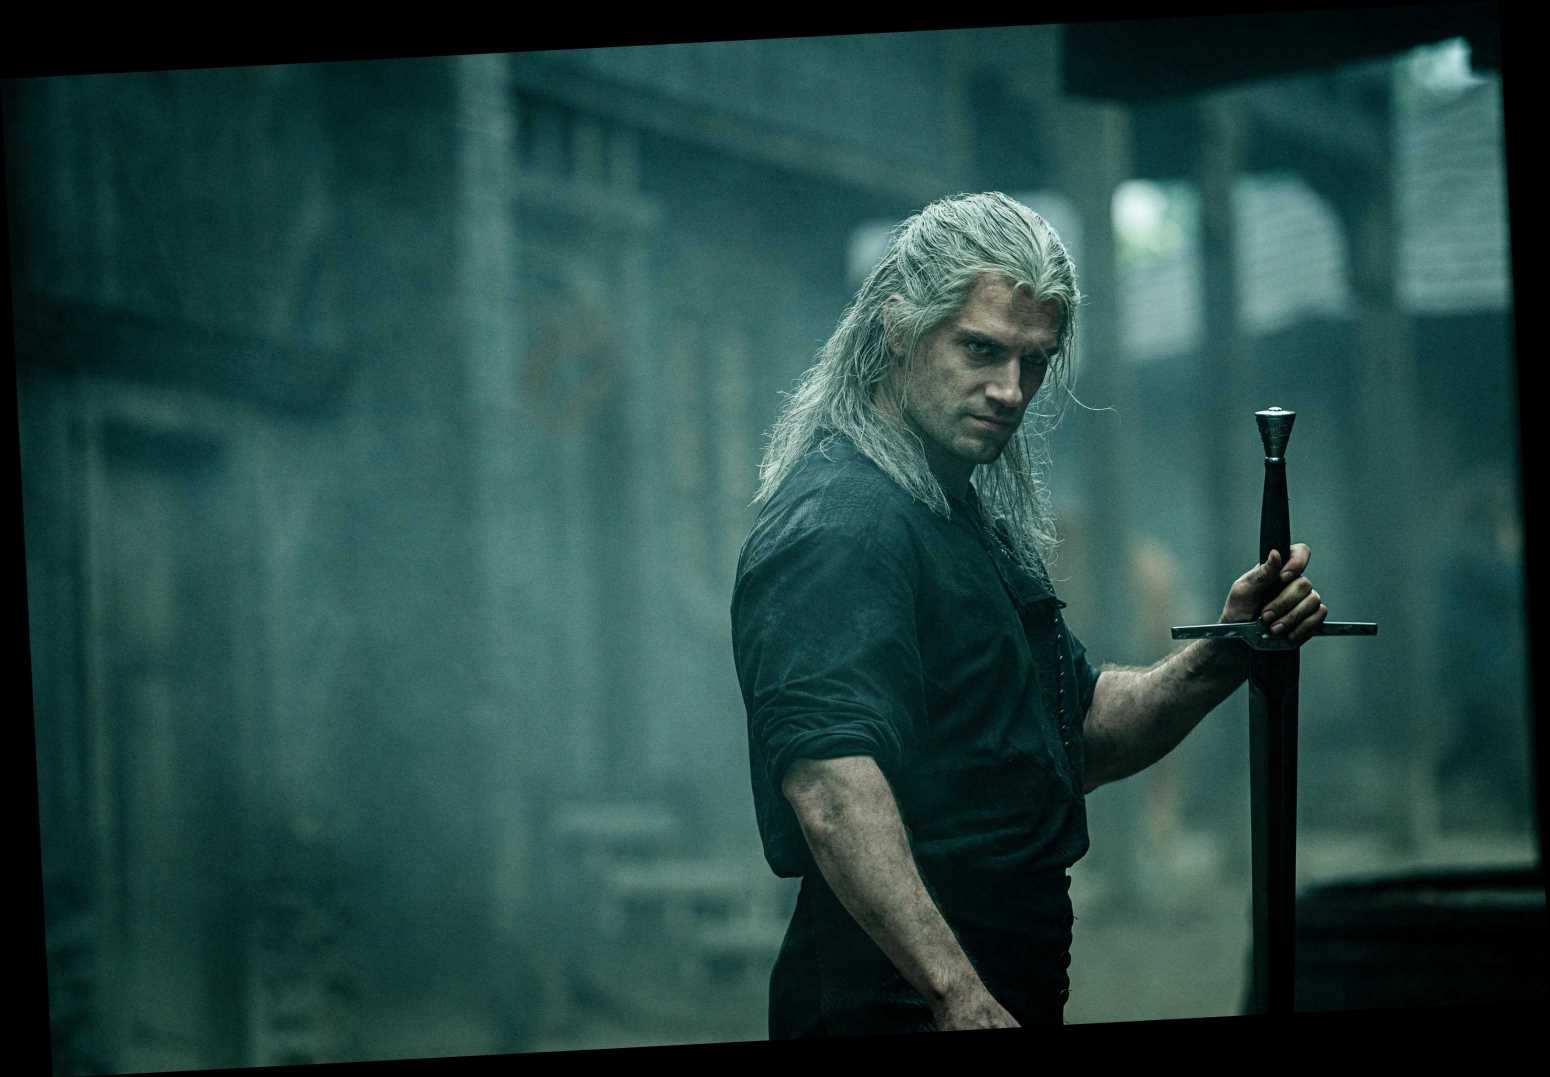 The Witcher is out on Netflix – reviews, cast and plot